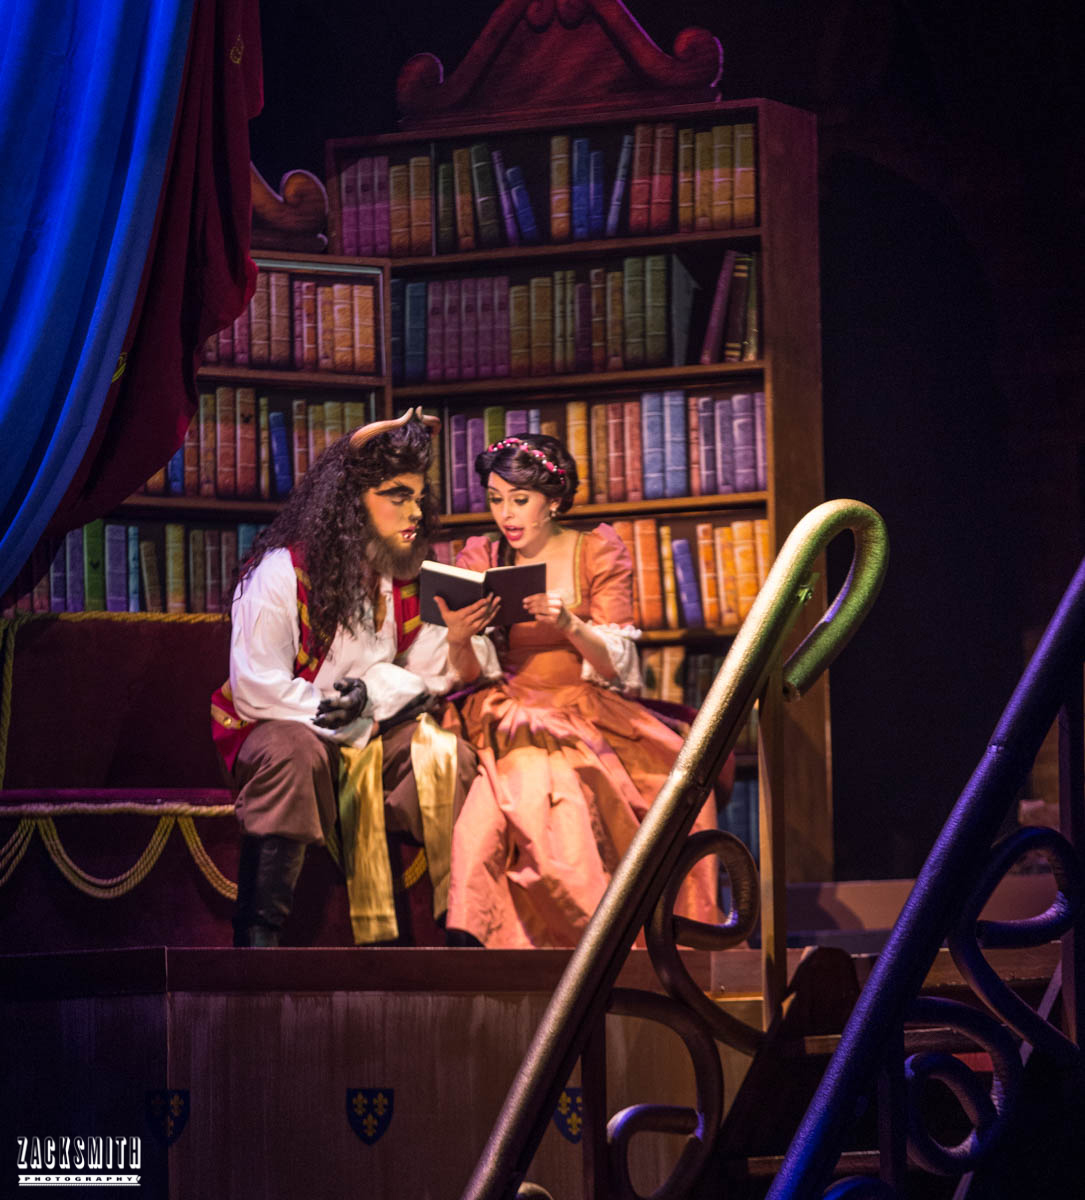 Beauty and the Beast The Performing Arts Academy Talent Performance Photography Zack Smith Photographer Chalmette Musical Theater Library Belle Beast Reading